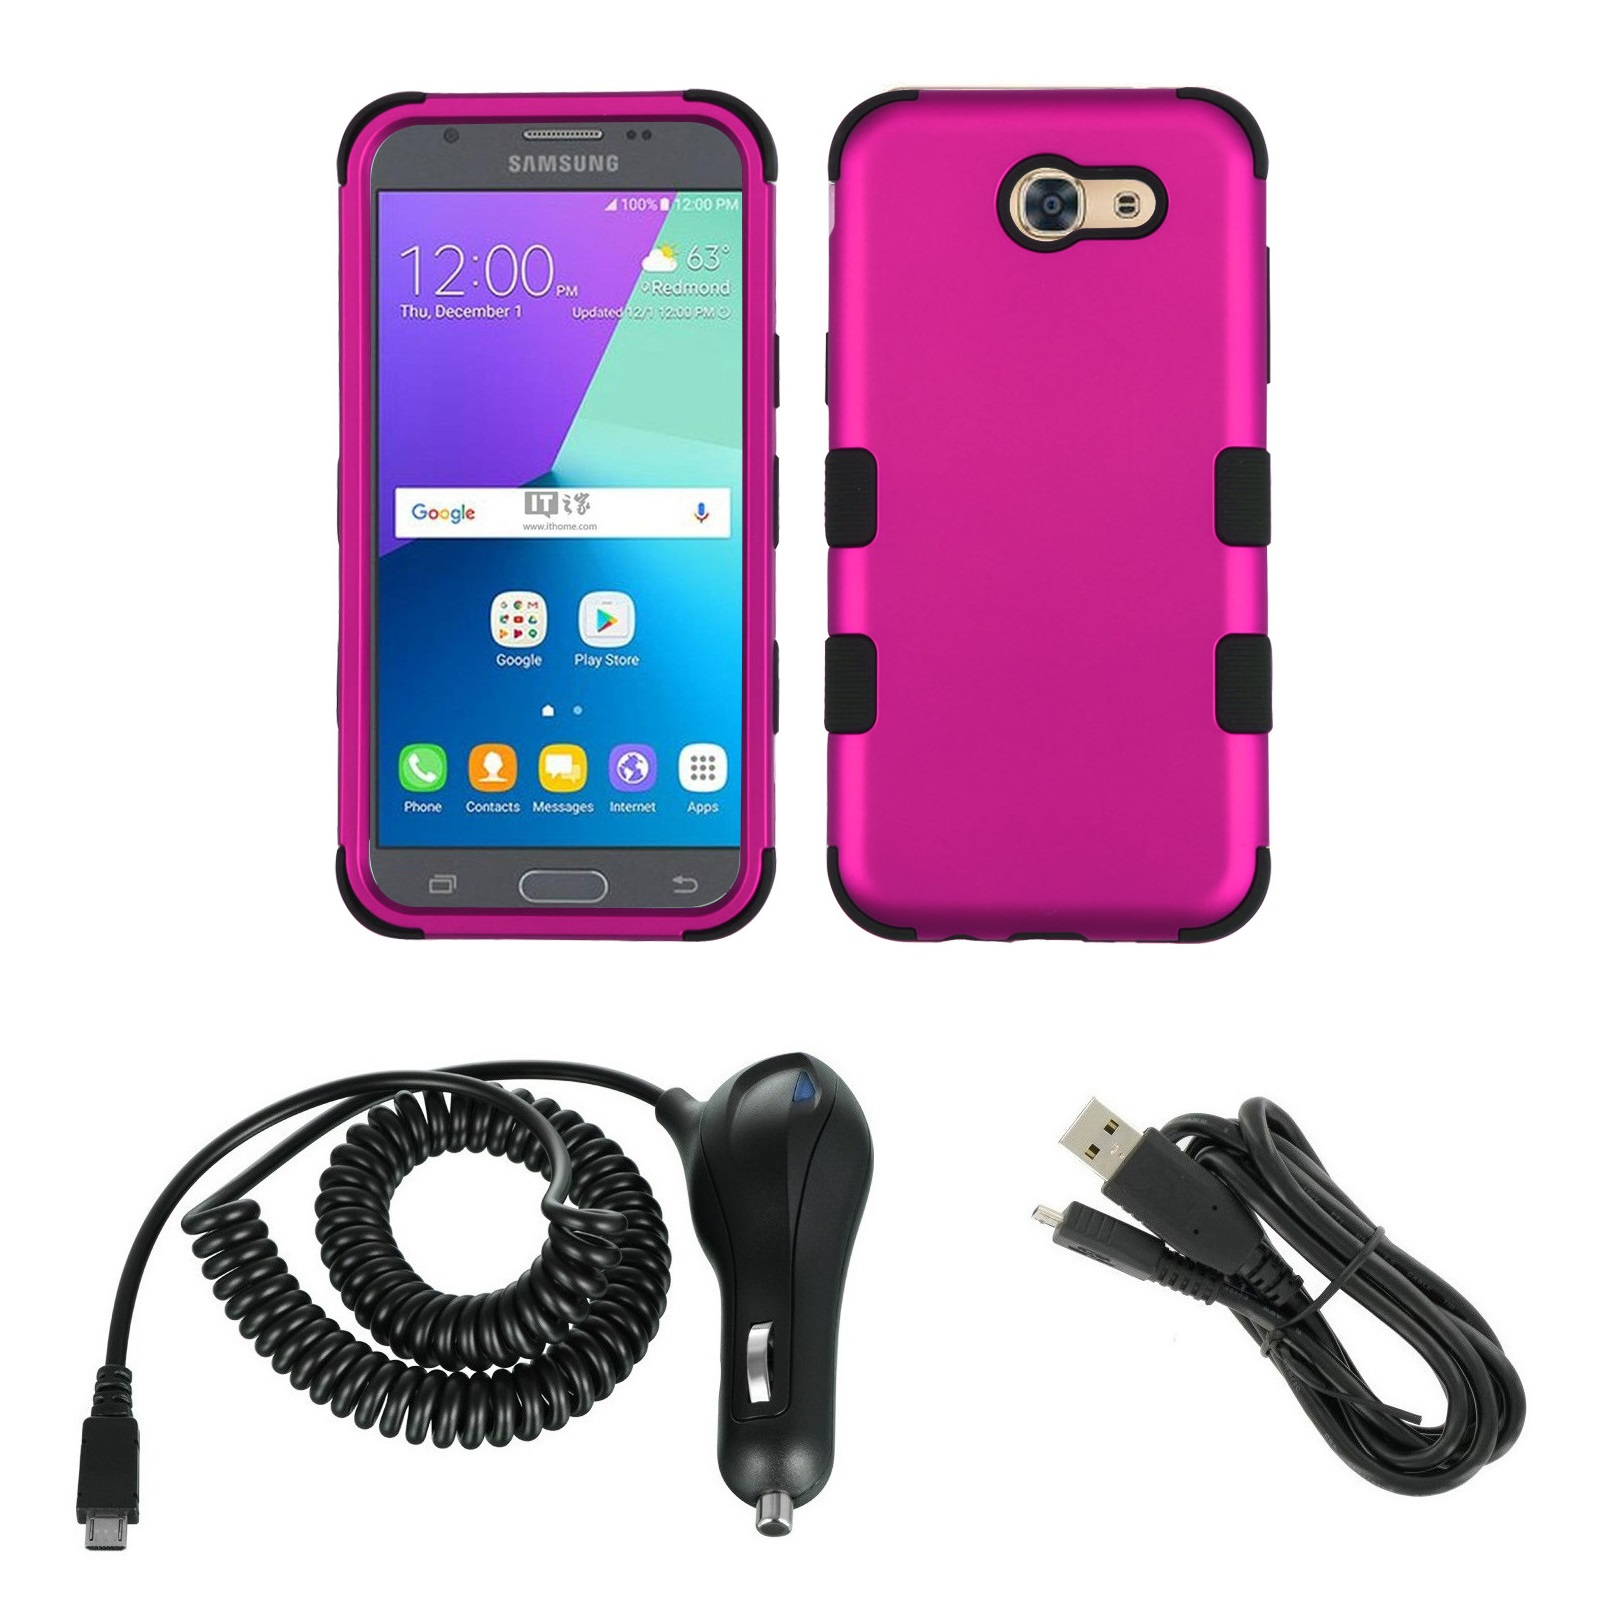 TUFF Series Military Grade Case (Hot Pink) Bundle with Atom LED, 2.1A Car Charger and Micro USB Cable for Samsung Galaxy J3 (Luna Pro, J3 Prime, Eclipse, Emerge, Mission, Amp Prime 2, Sol 2)